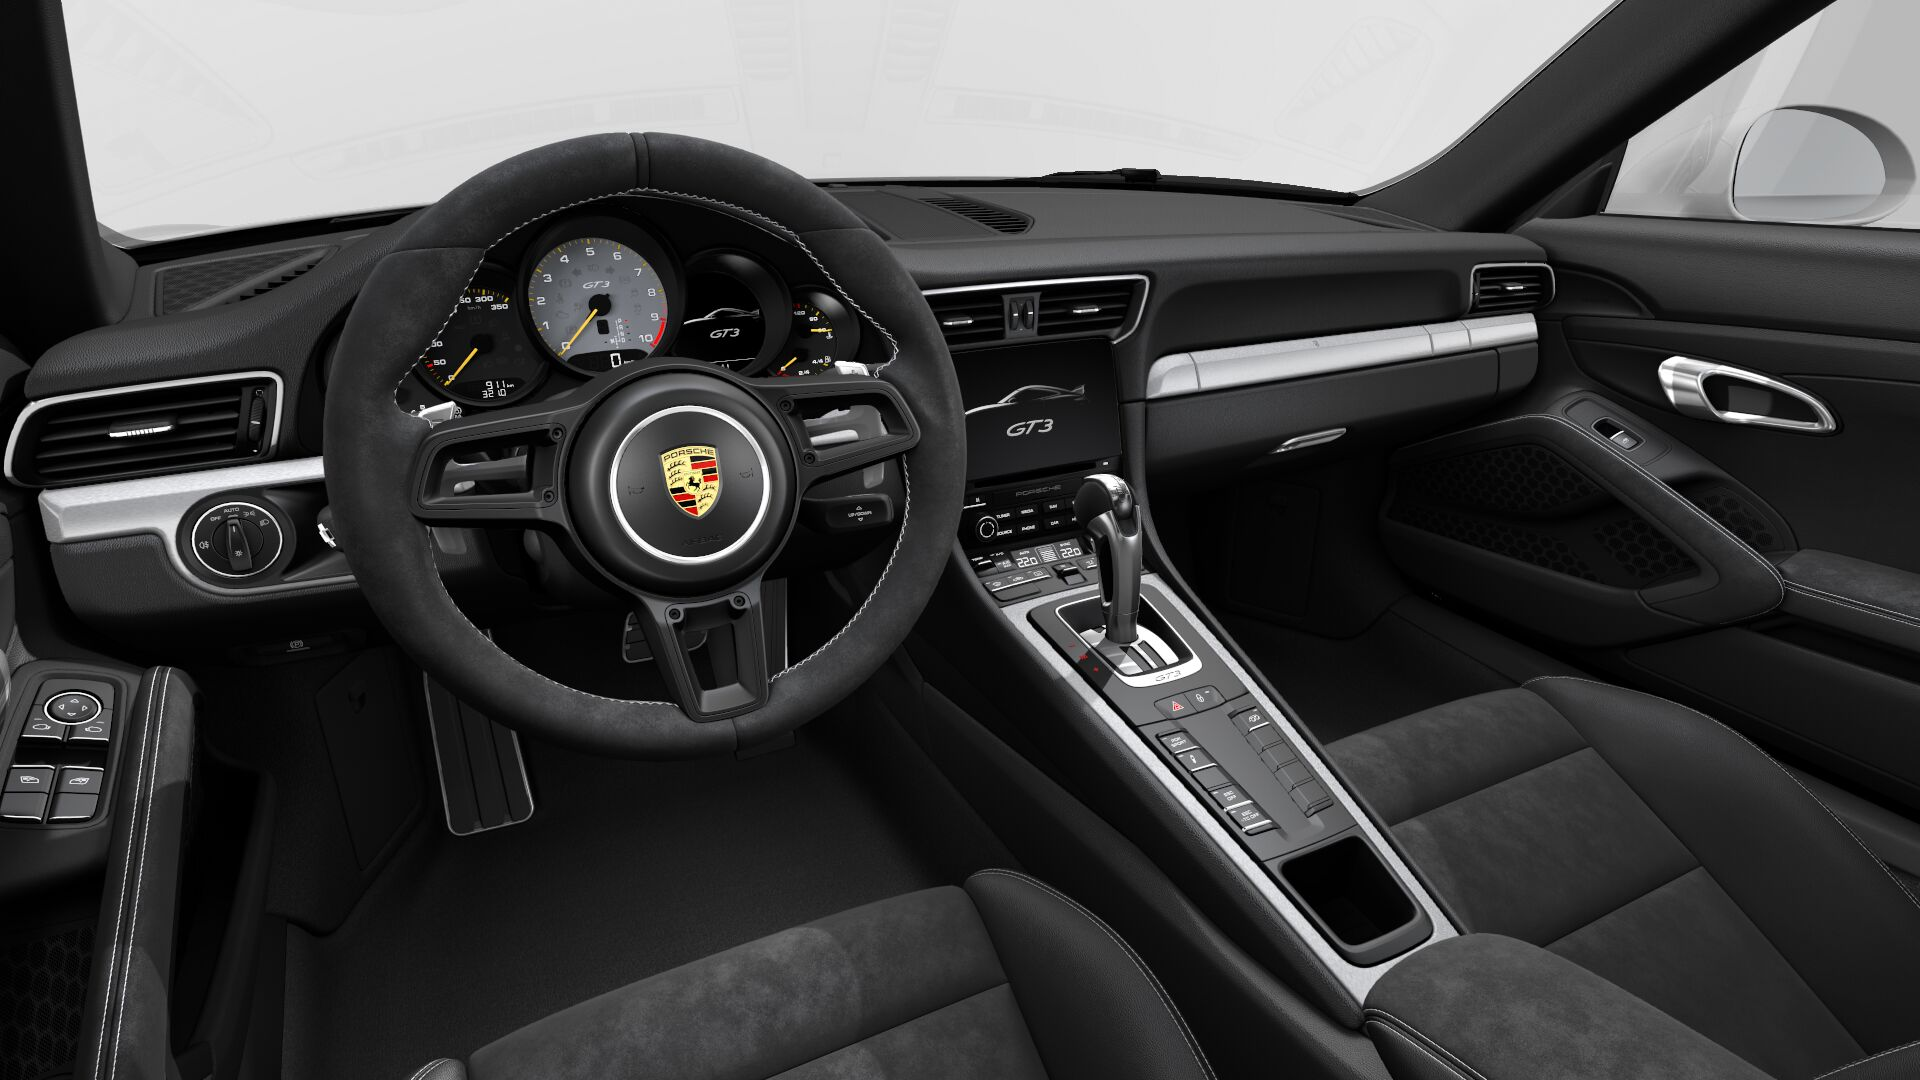 Interior Design of the 2018 Porsche 911 GT3